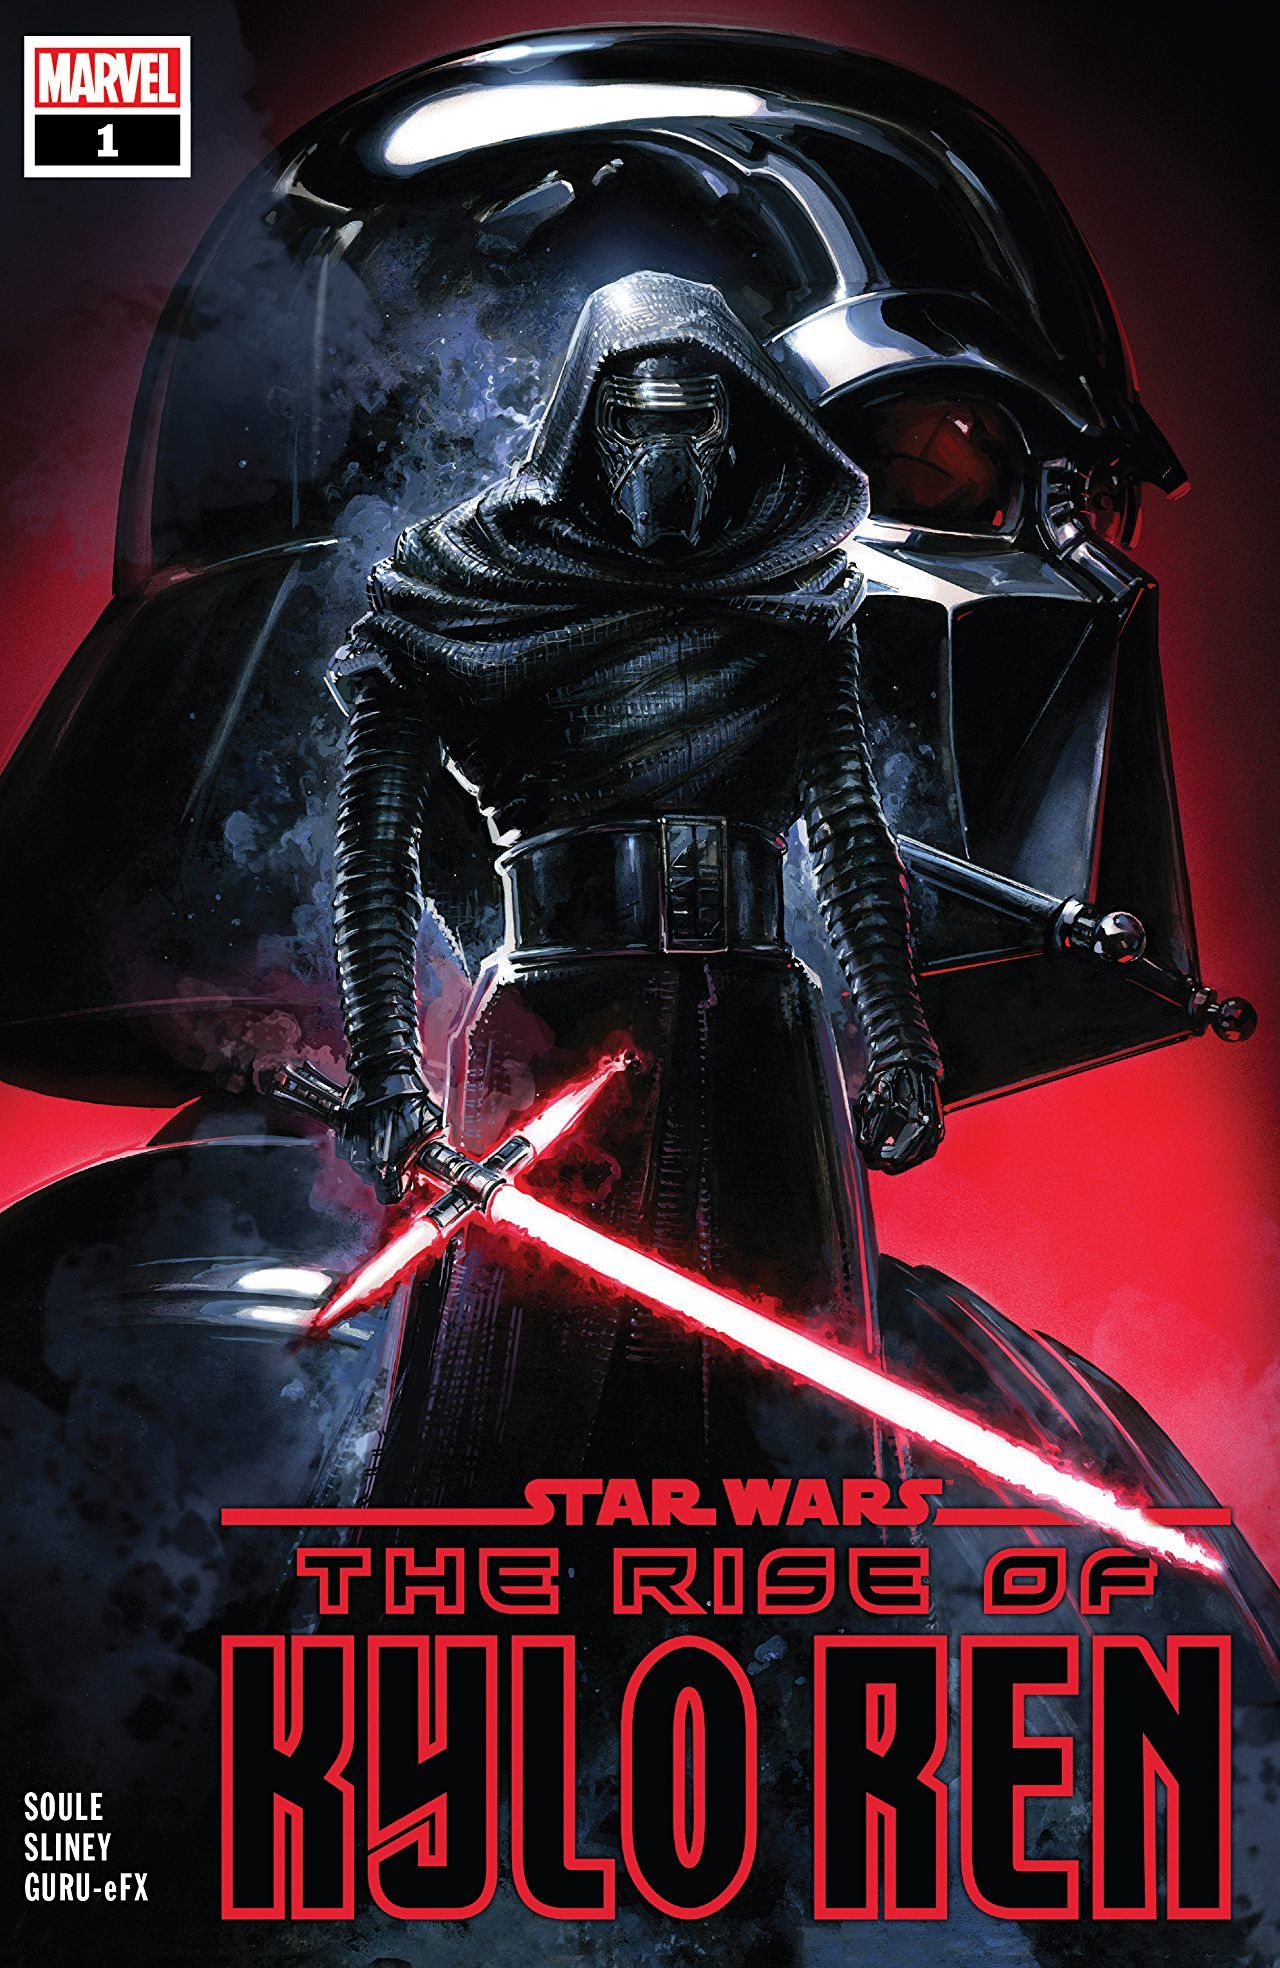 Star Wars: The Rise of Kylo Ren #1 Cover